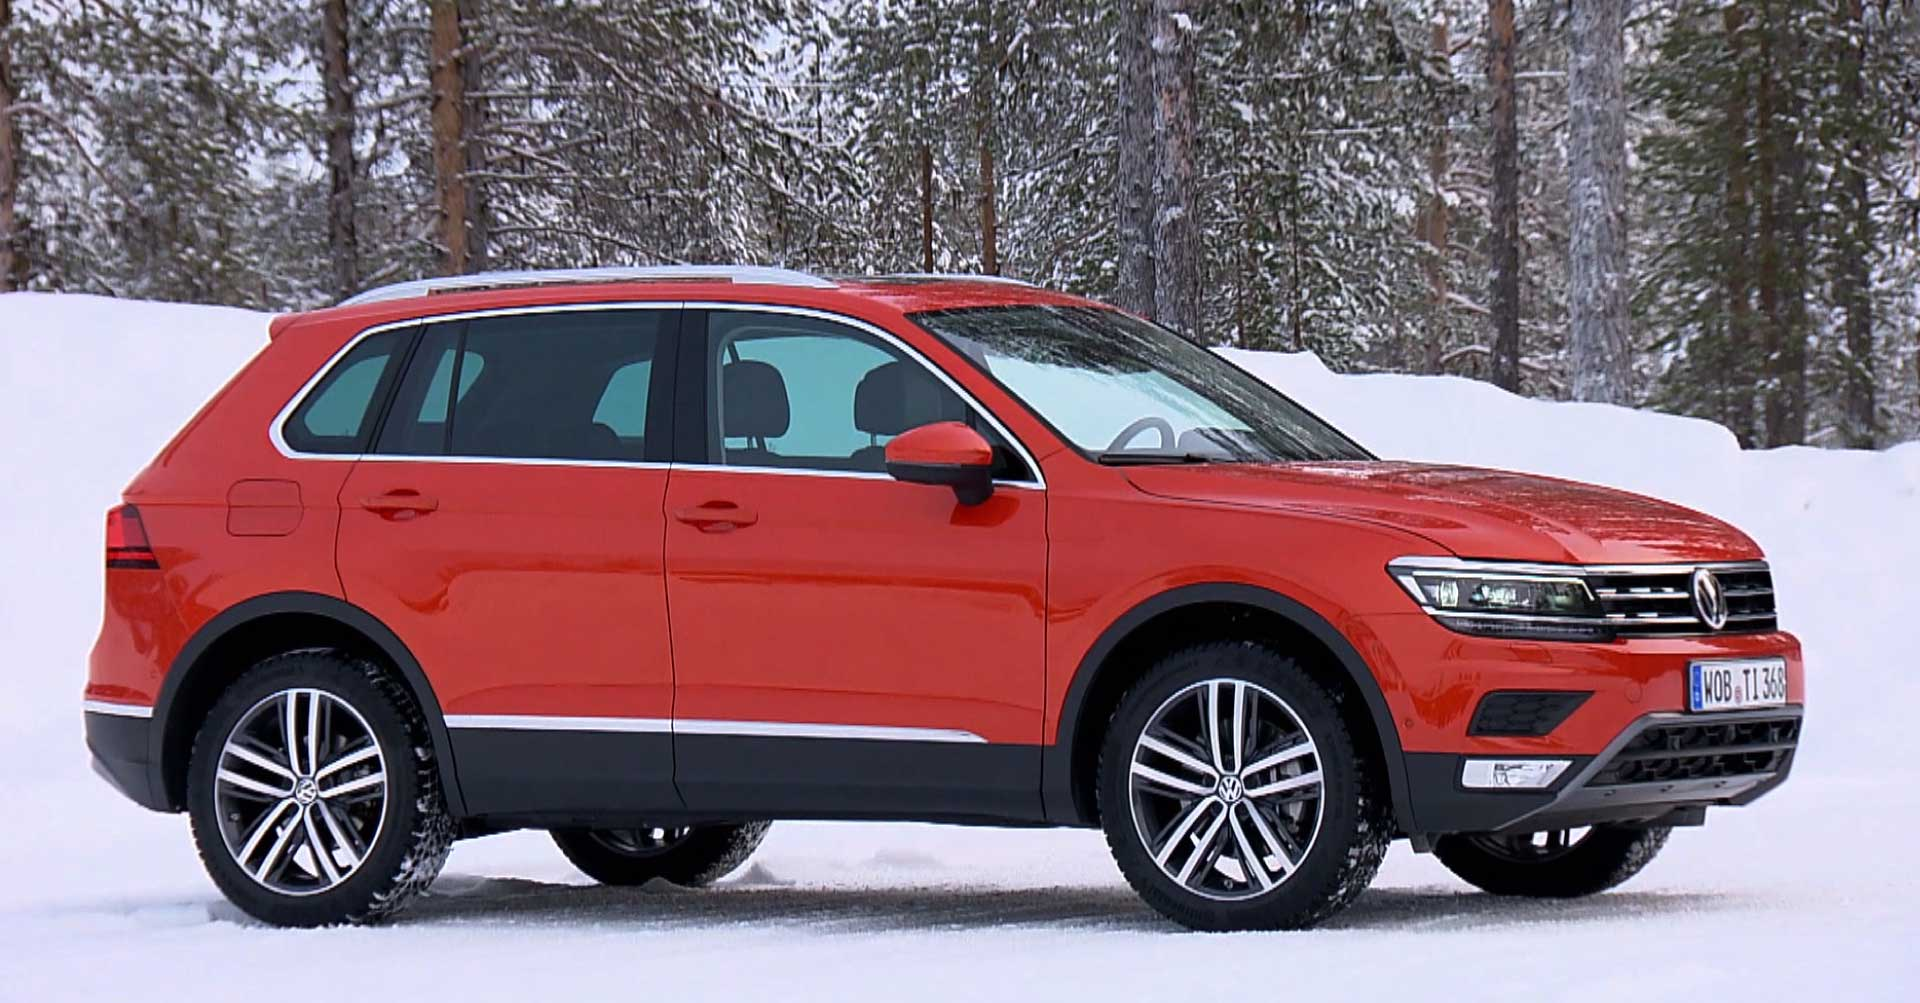 2018 vw tiguan canadian car reviews driving television. Black Bedroom Furniture Sets. Home Design Ideas